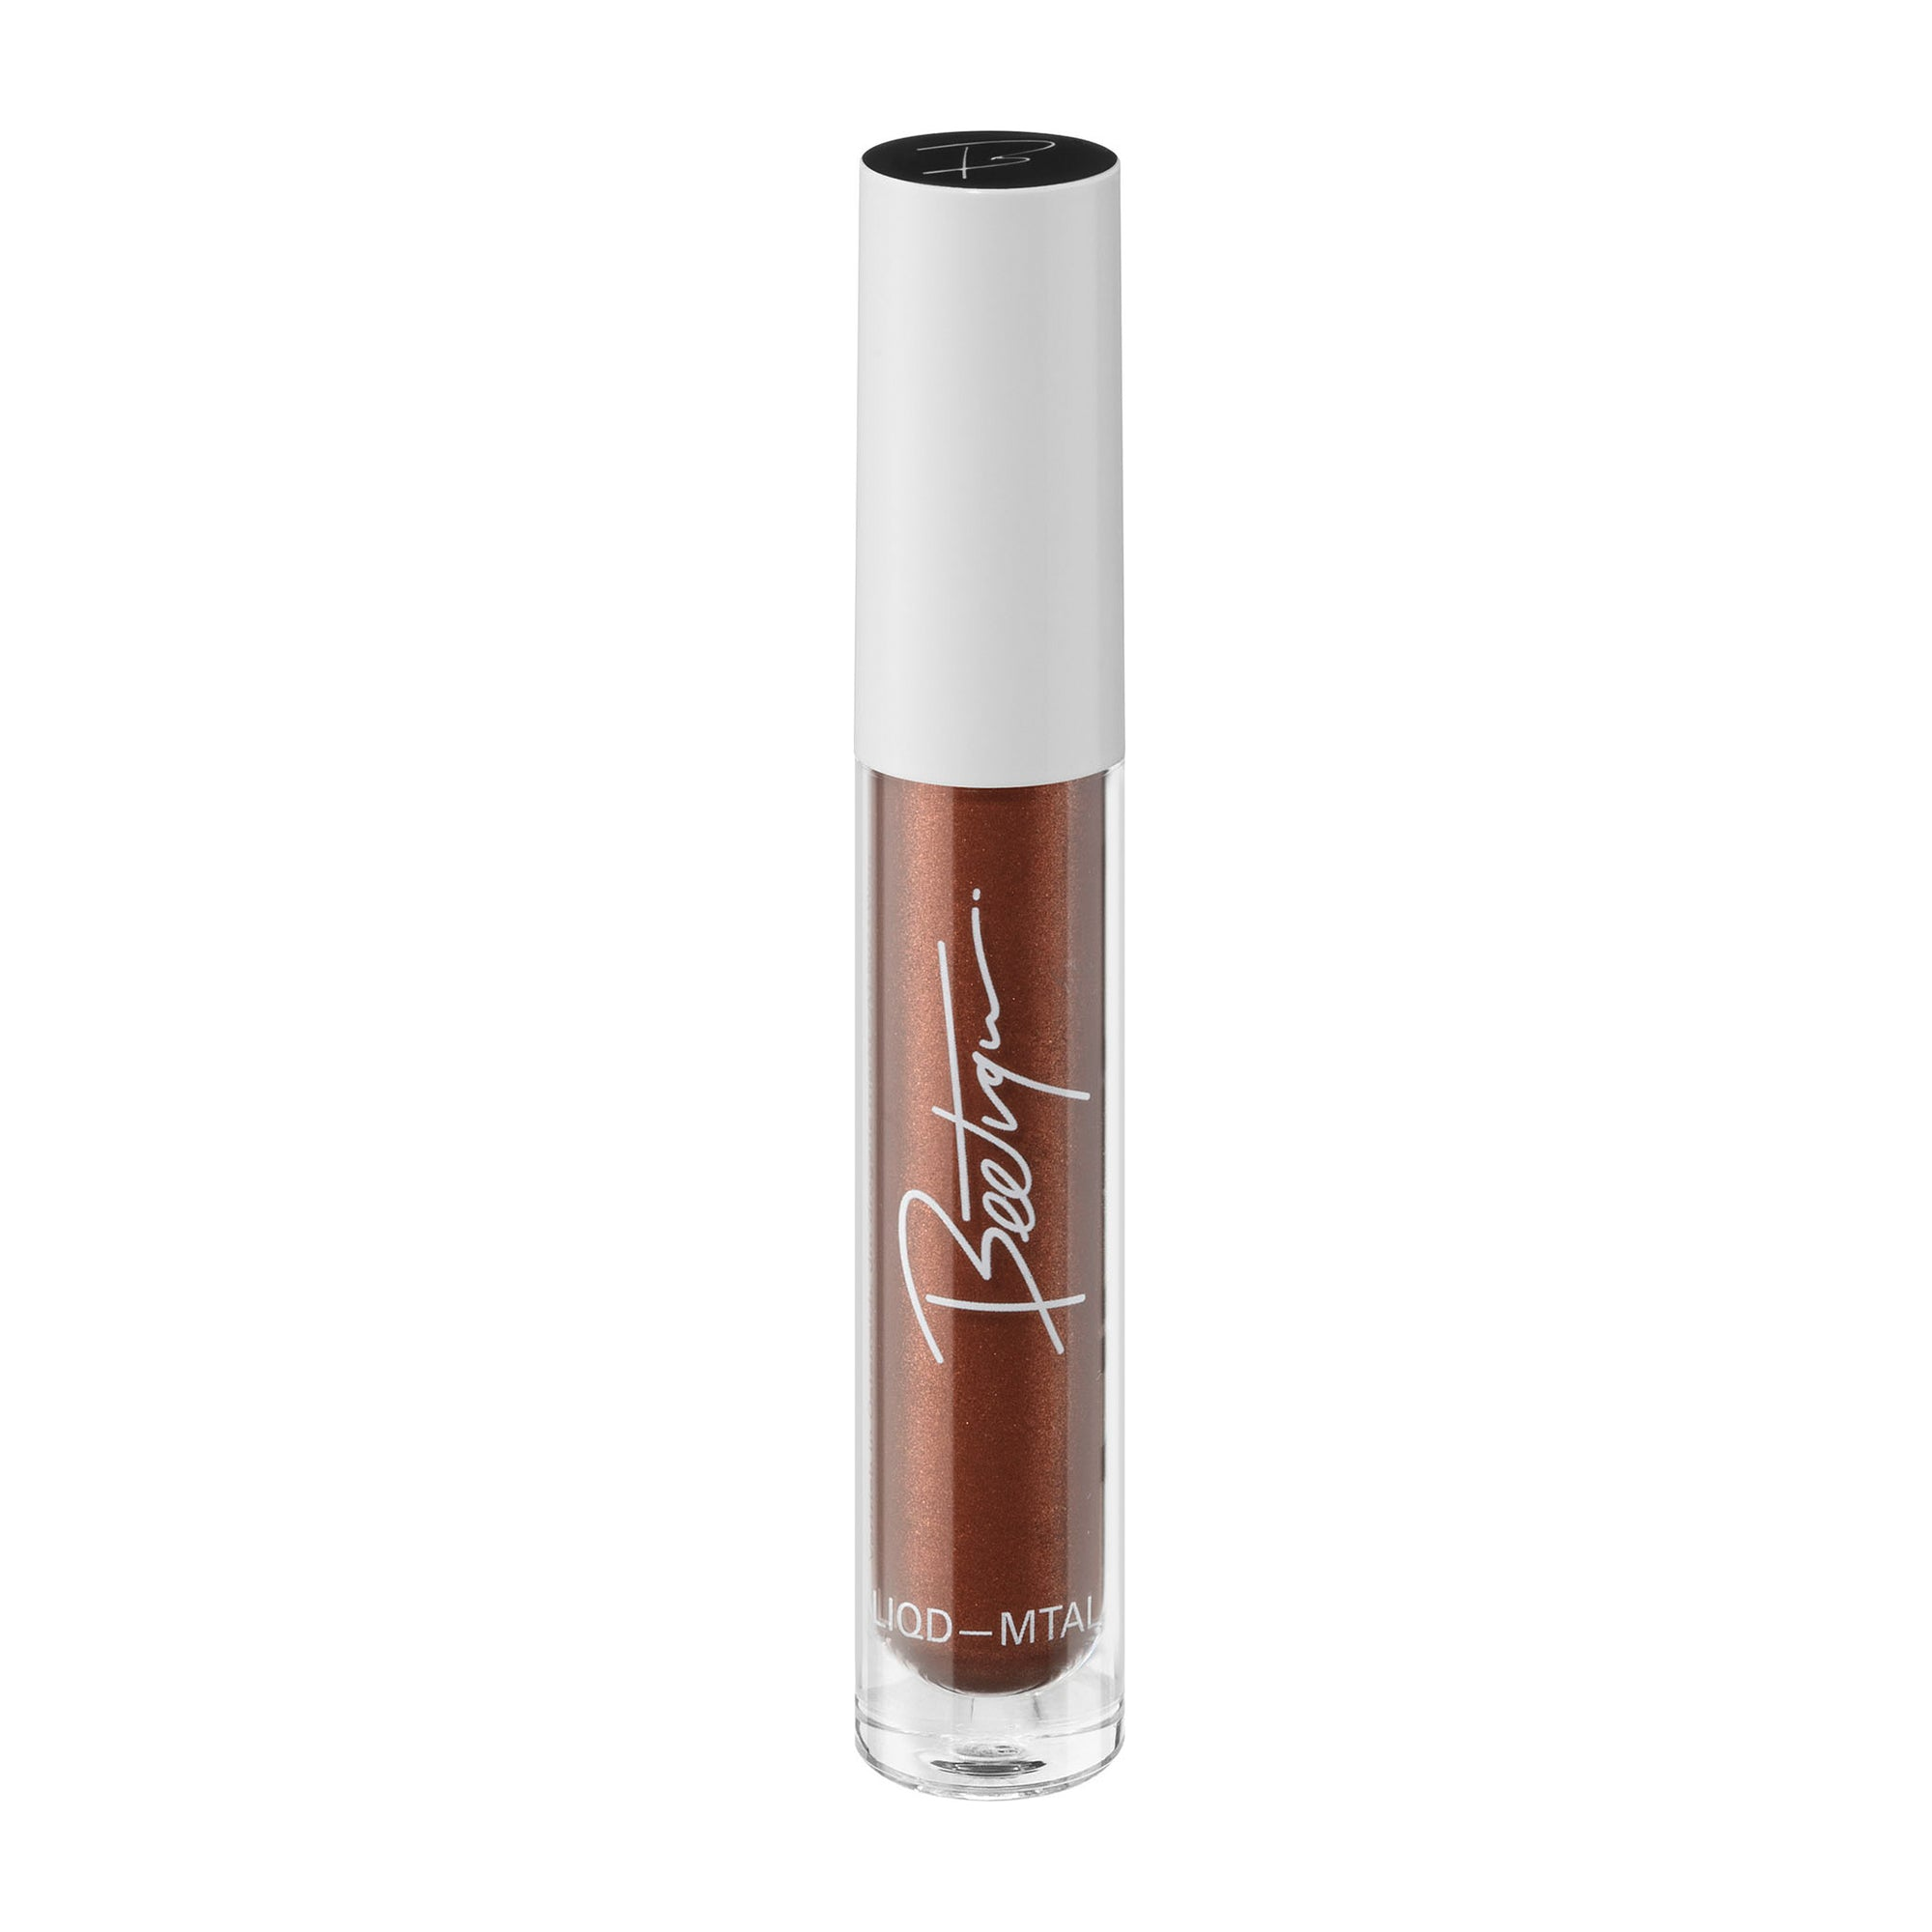 Lip-Liquid-Metal – Heavy Duty 050